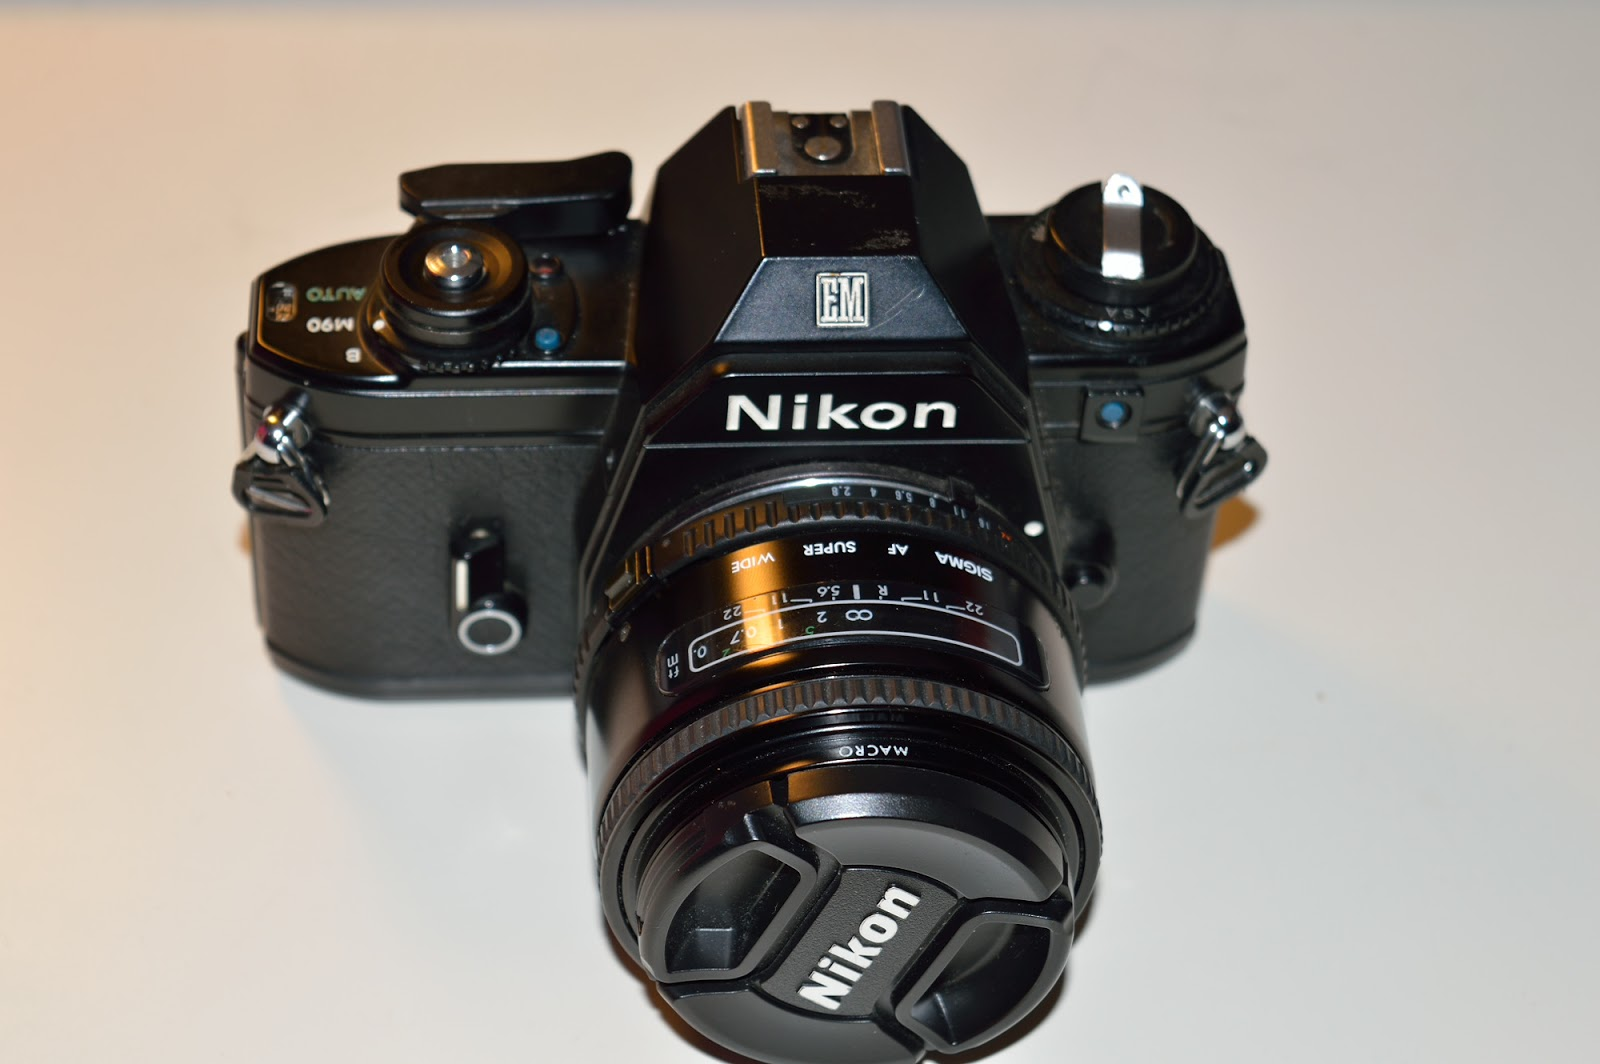 Nikon EM with the Sigma 24mm f/2.8 - Vintage Camera PNG Nikon